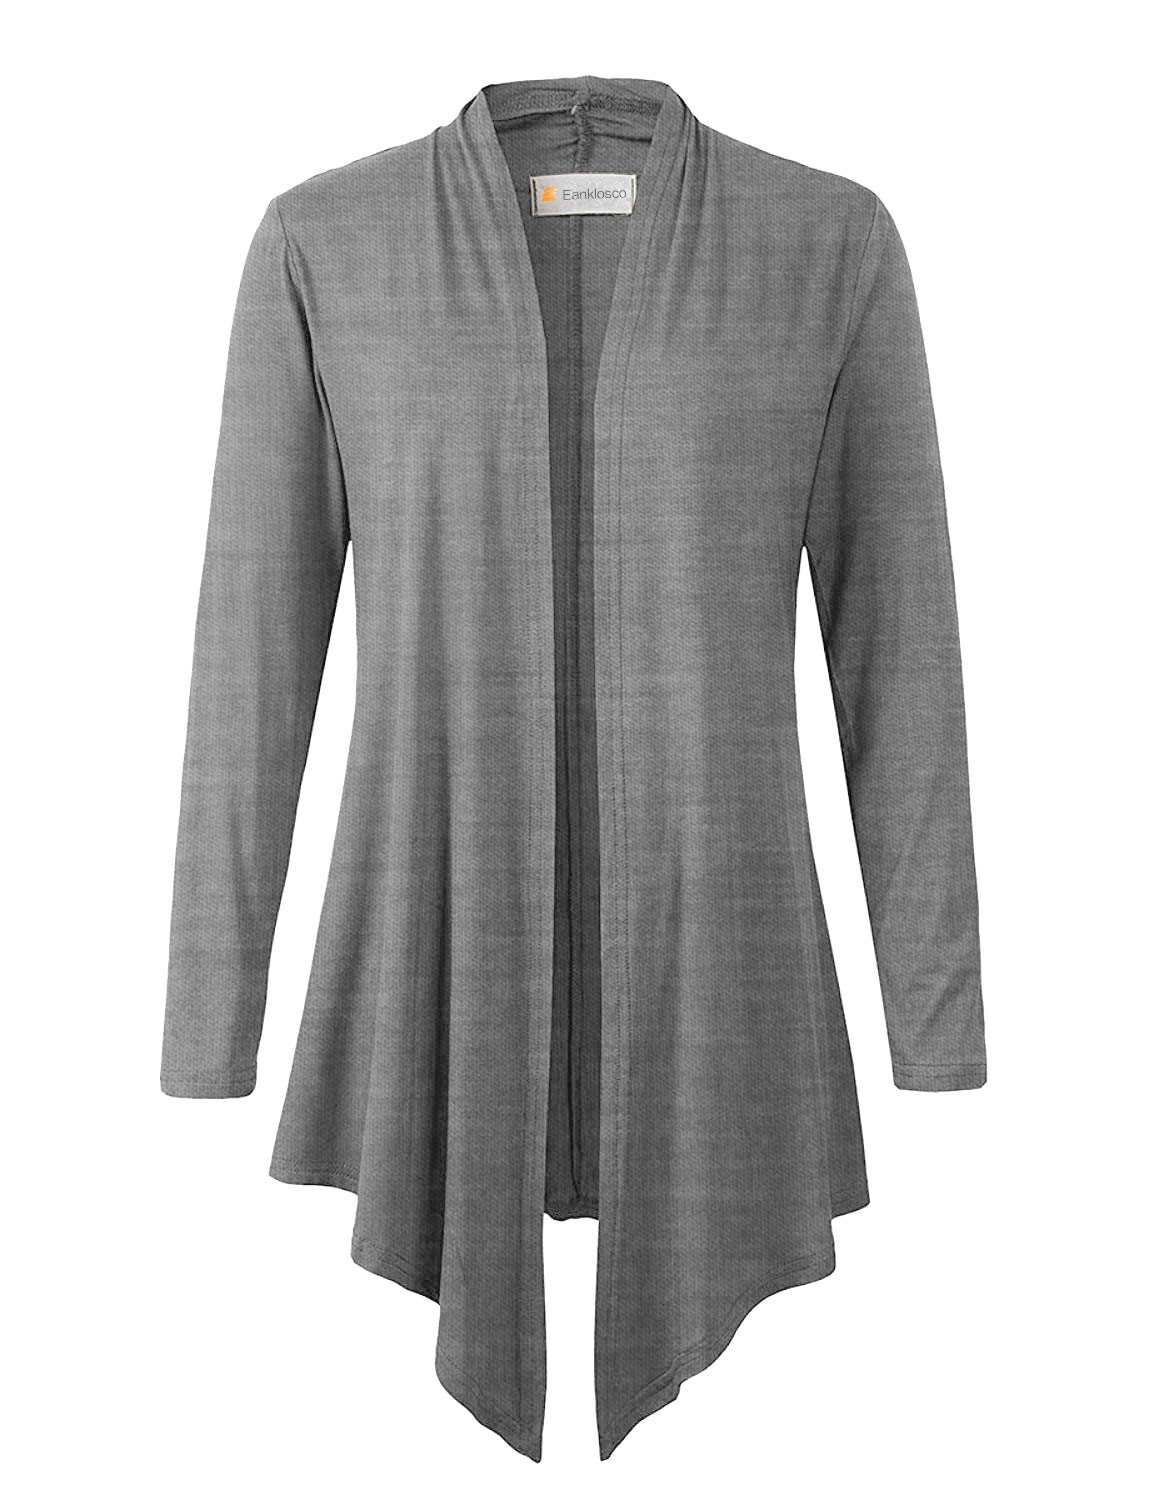 Eanklosco Women's Long Sleeve Drape Open-Front Cardigan Light Weight Irregular Hem Casual Tops (L, Heather Grey)